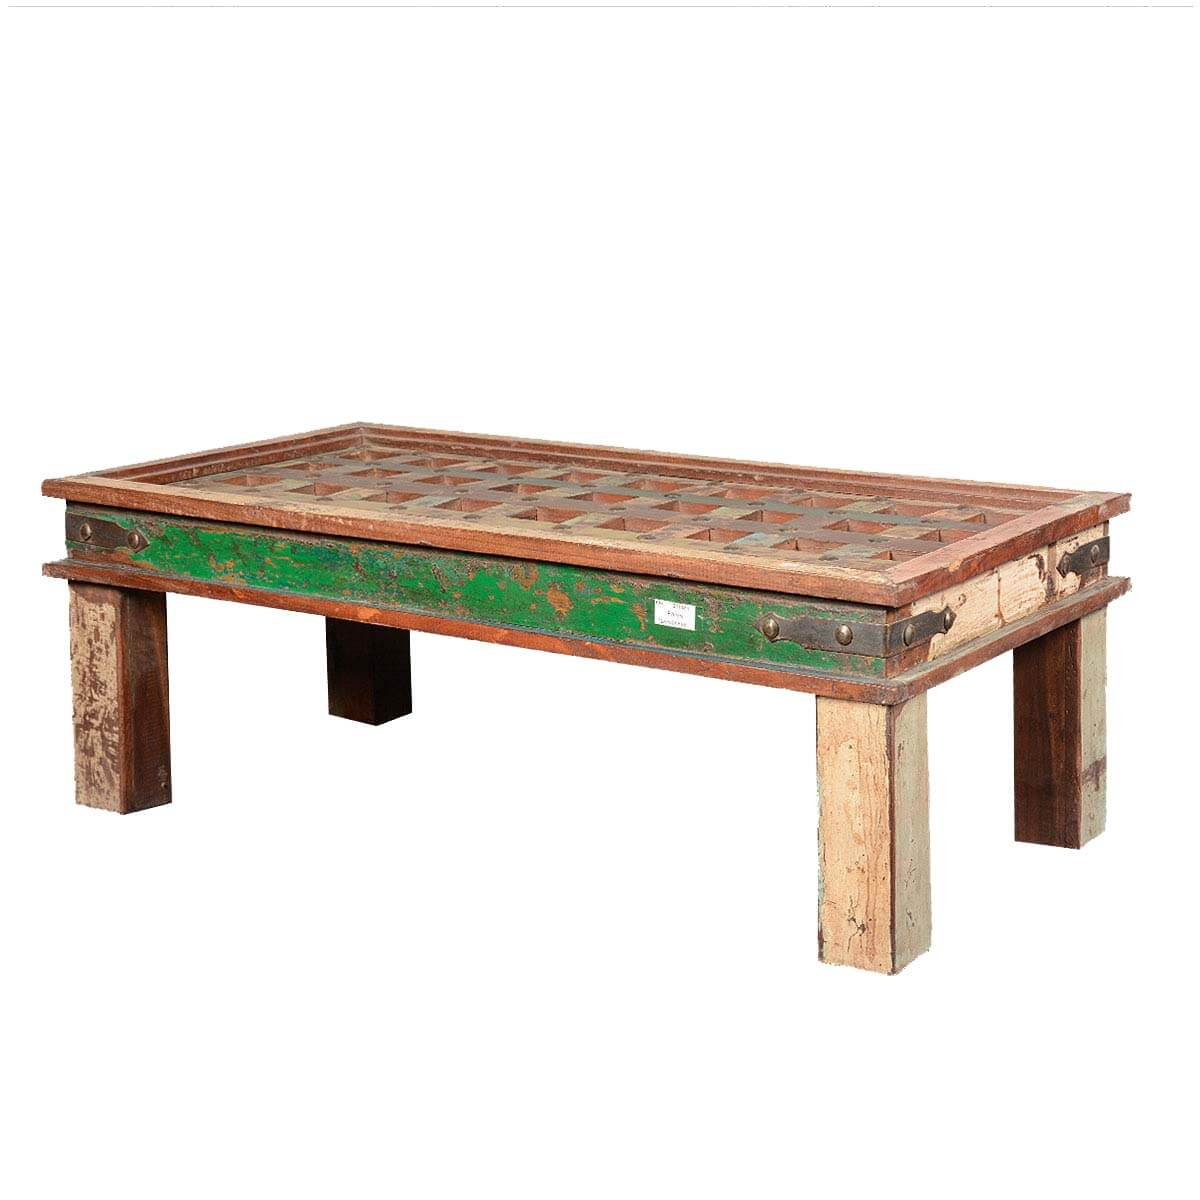 Rustic coffee table french quarter reclaimed wood lattice top for Reclaimed coffee table